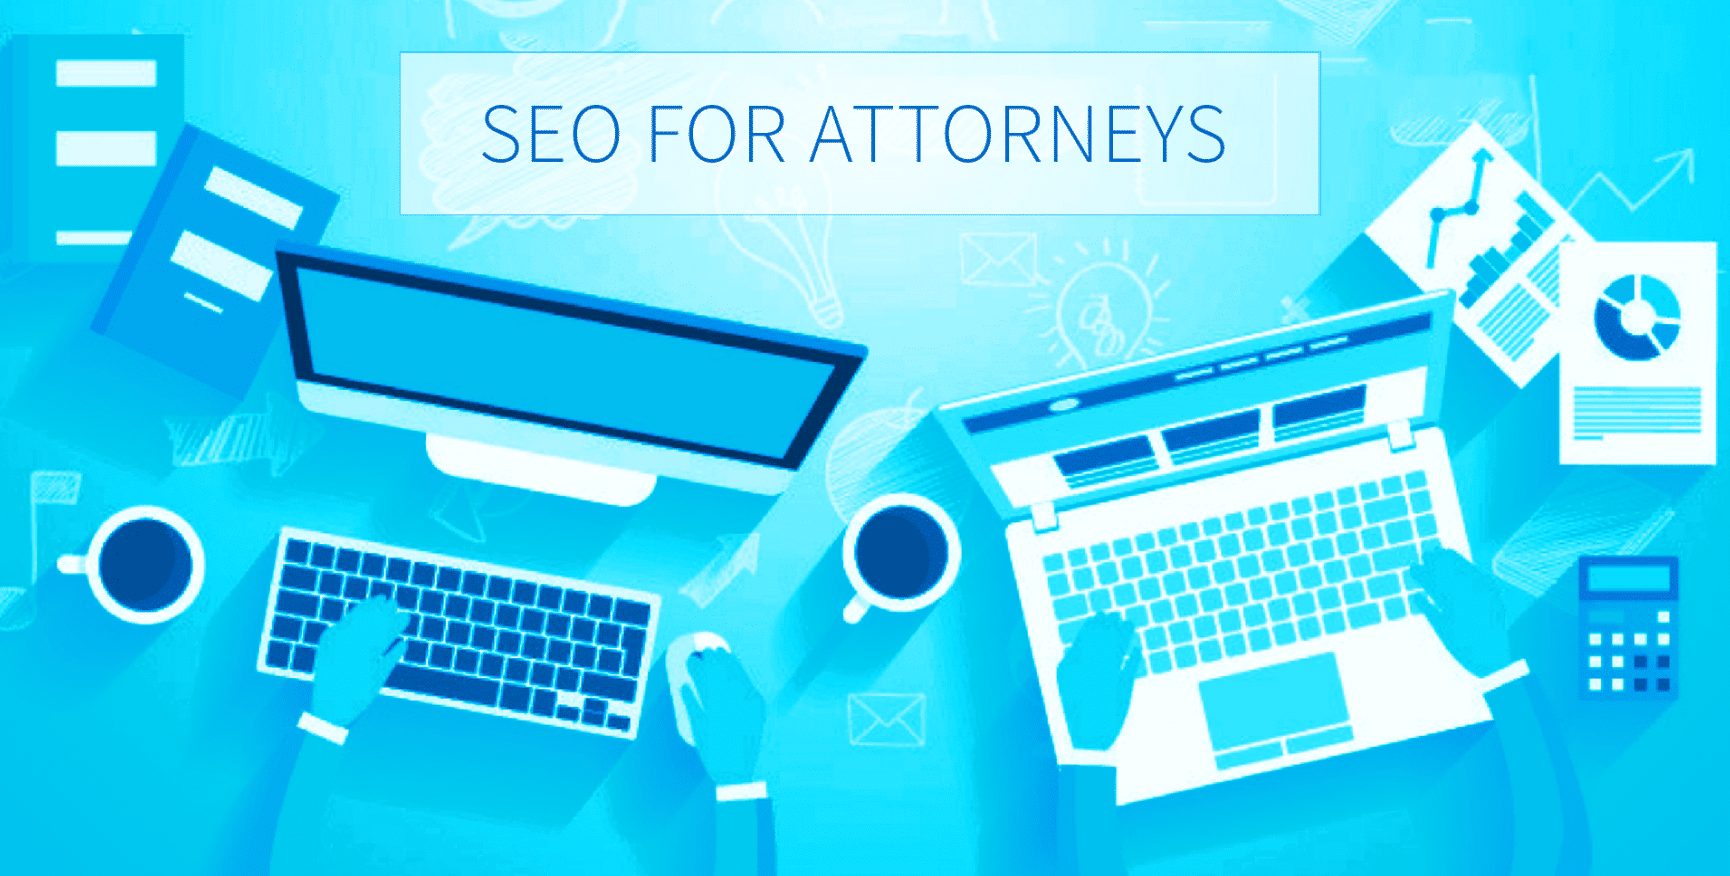 SEO For Attorneys: 3 Ways To Boost Your Google Search Engine Visibility